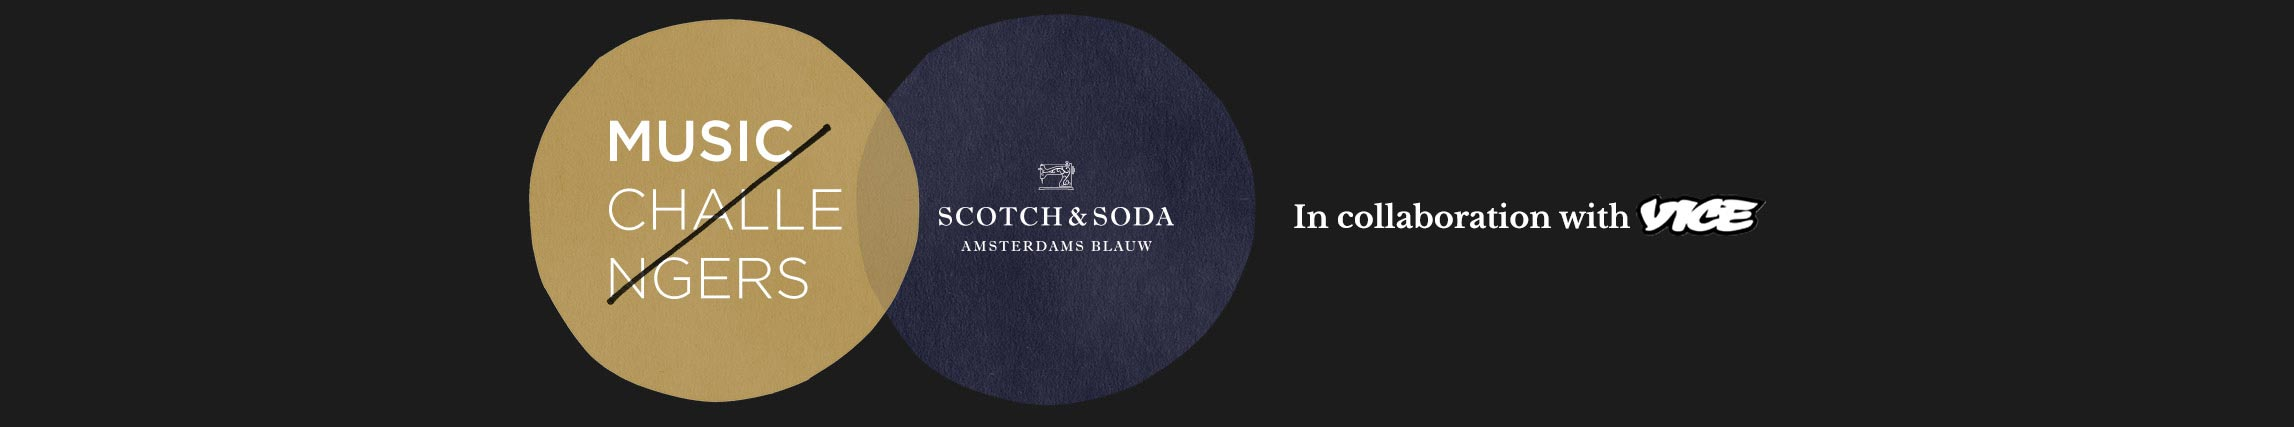 Scotch and soda featuring vice banner